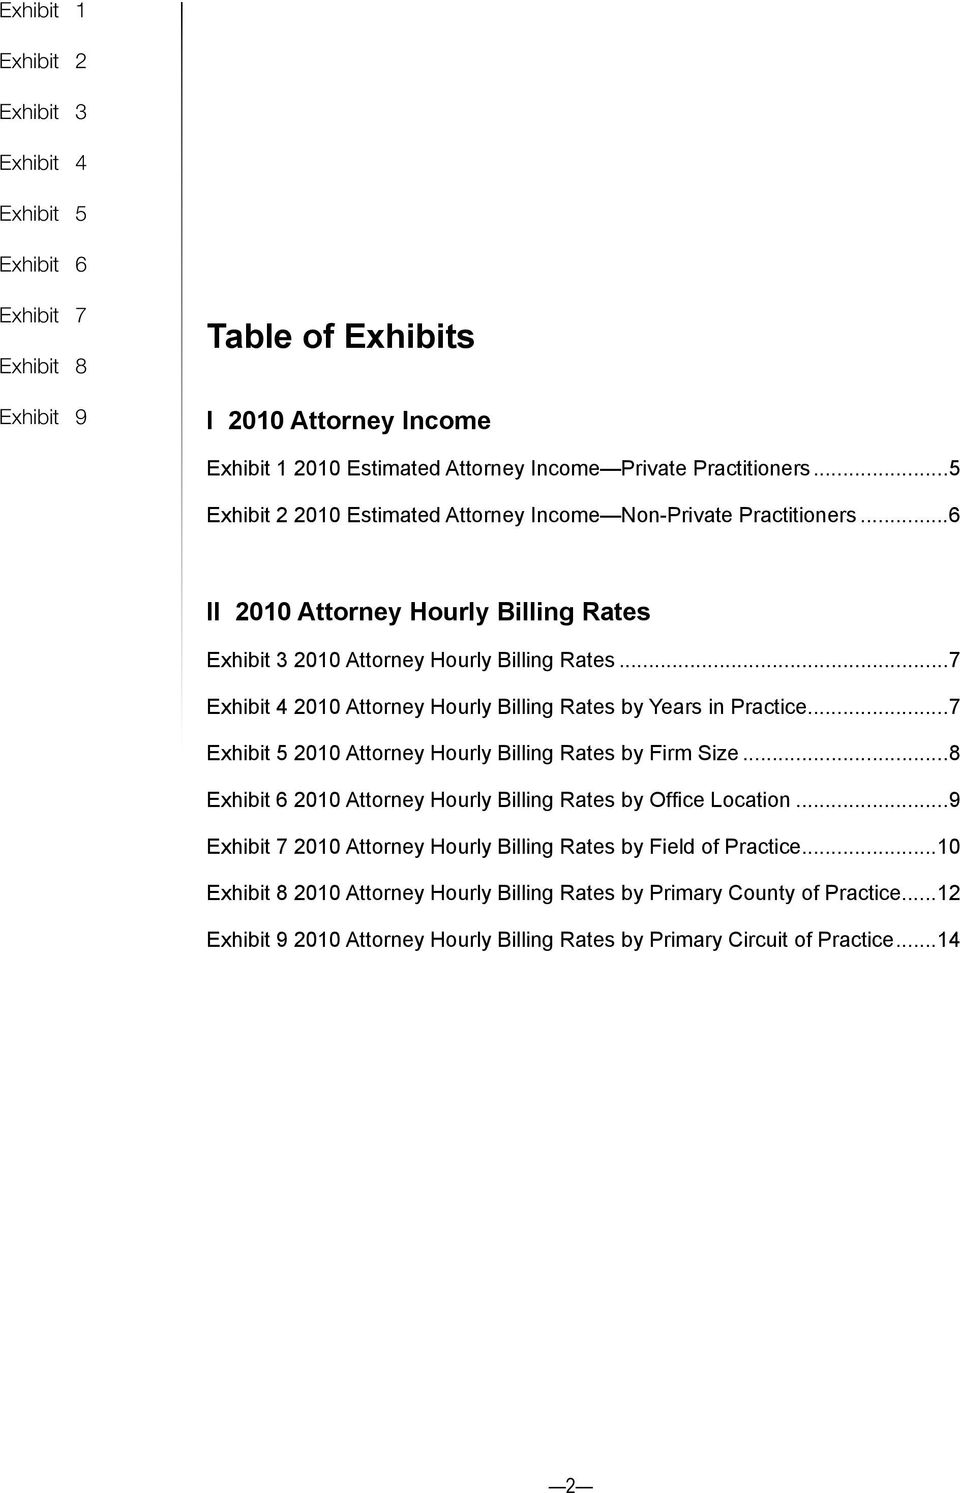 ..7 2010 Attorney Hourly Billing Rates by Years in Practice...7 2010 Attorney Hourly Billing Rates by Firm Size.